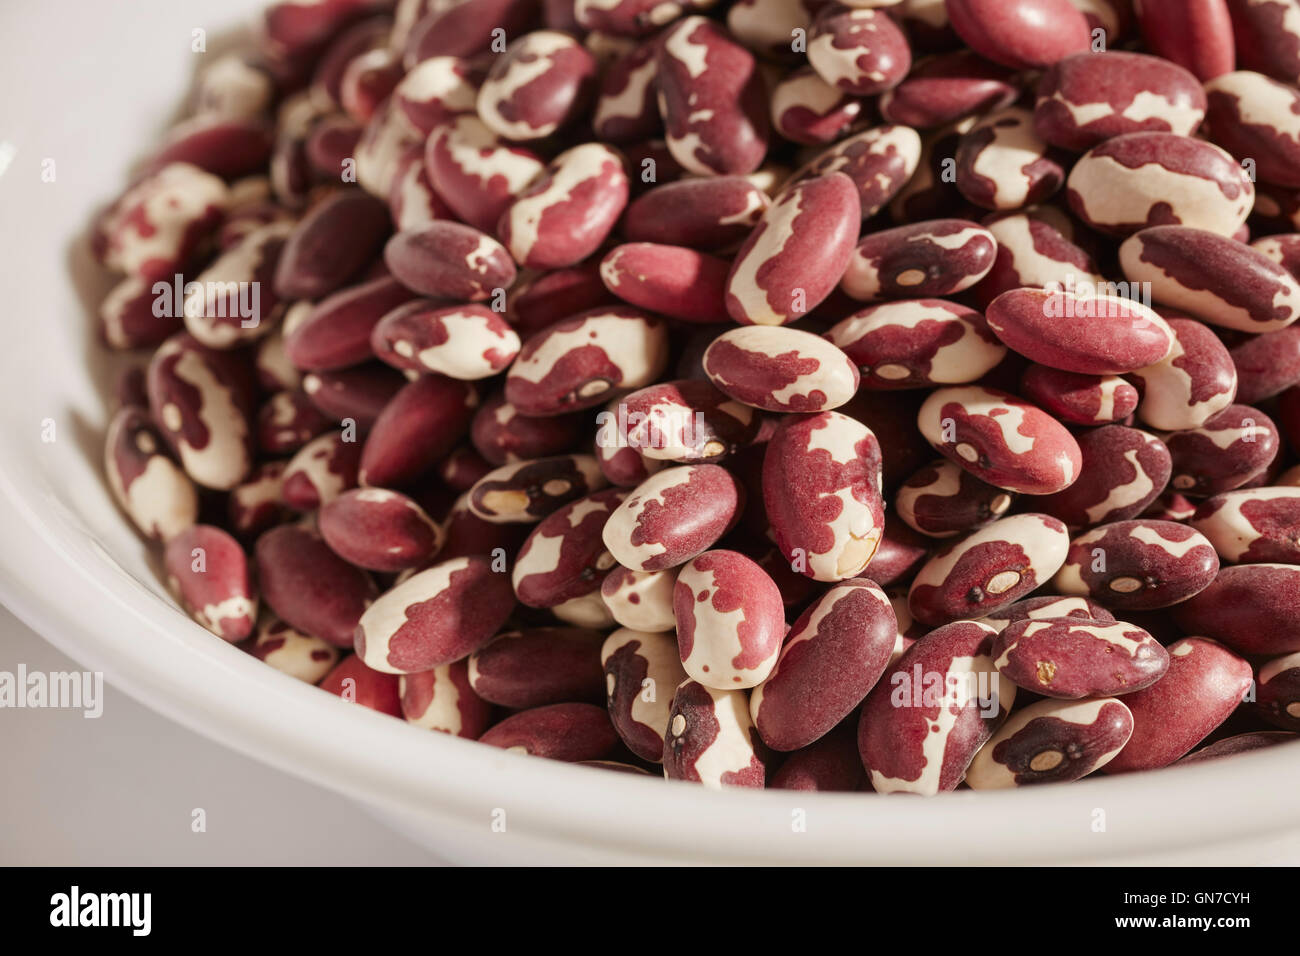 dried Anasazi beans, a traditional Native American food from Arizona, USA - Stock Image